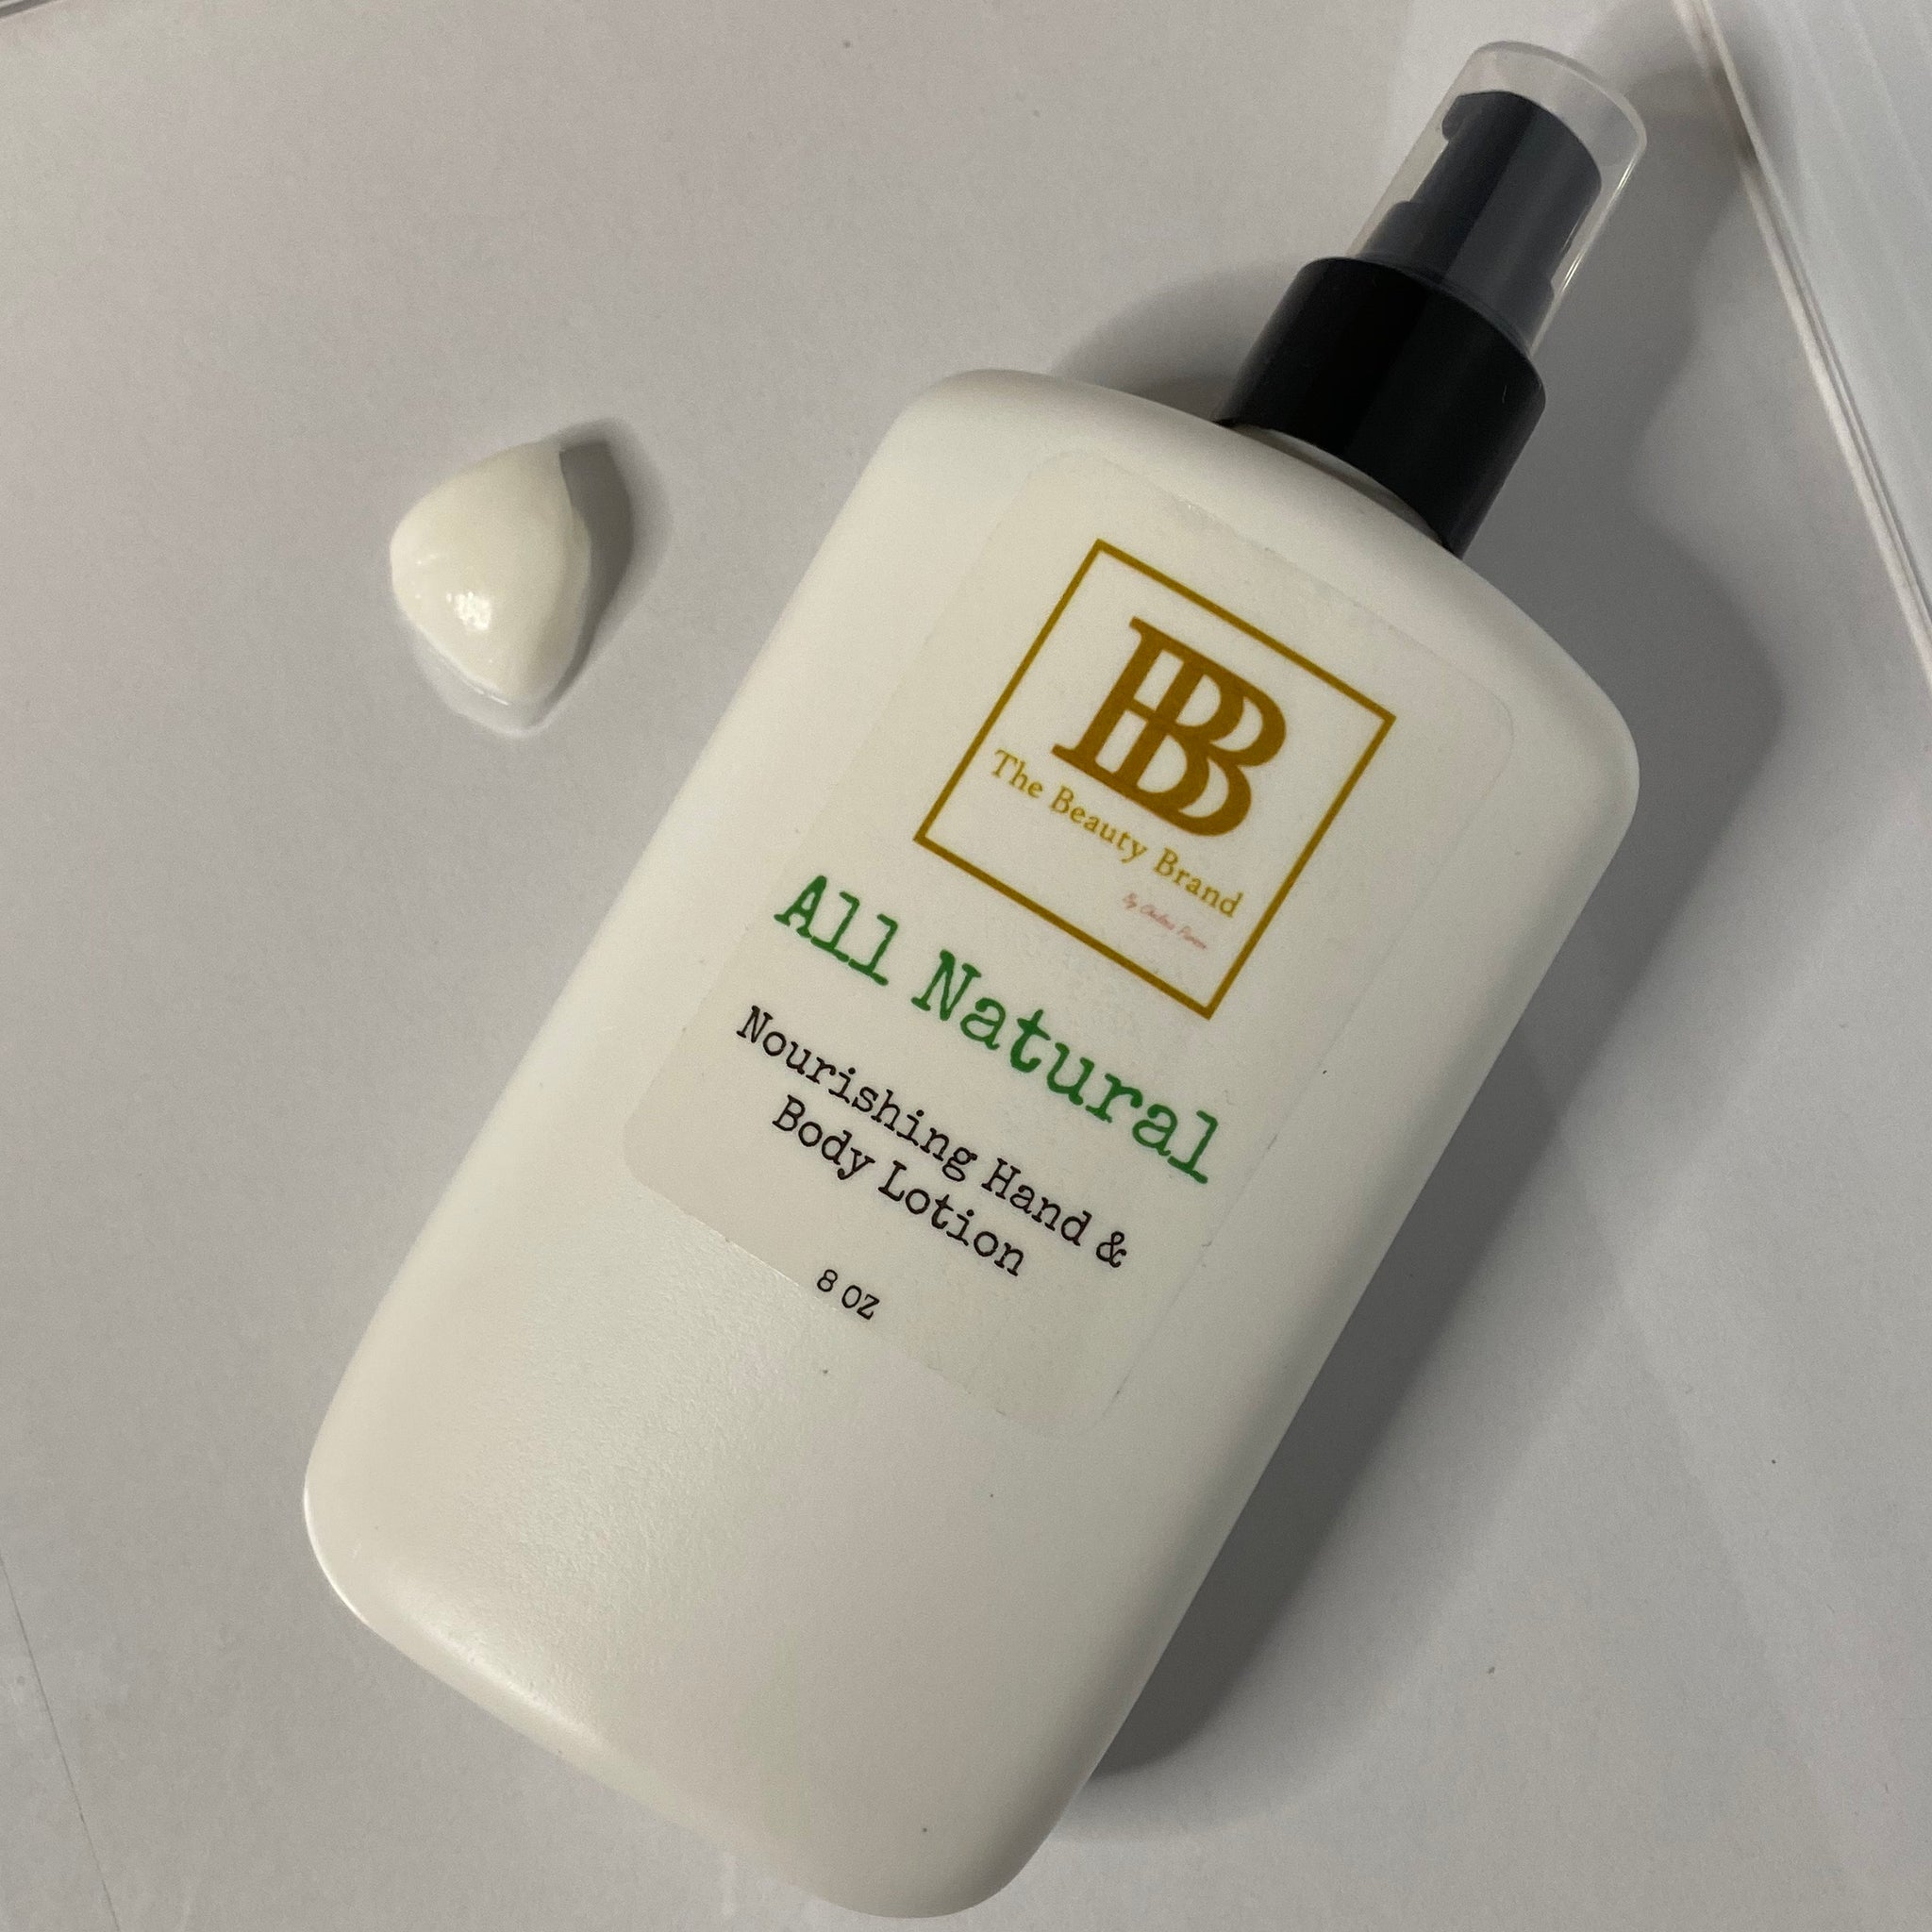 All Natural Nourishing Body Lotion